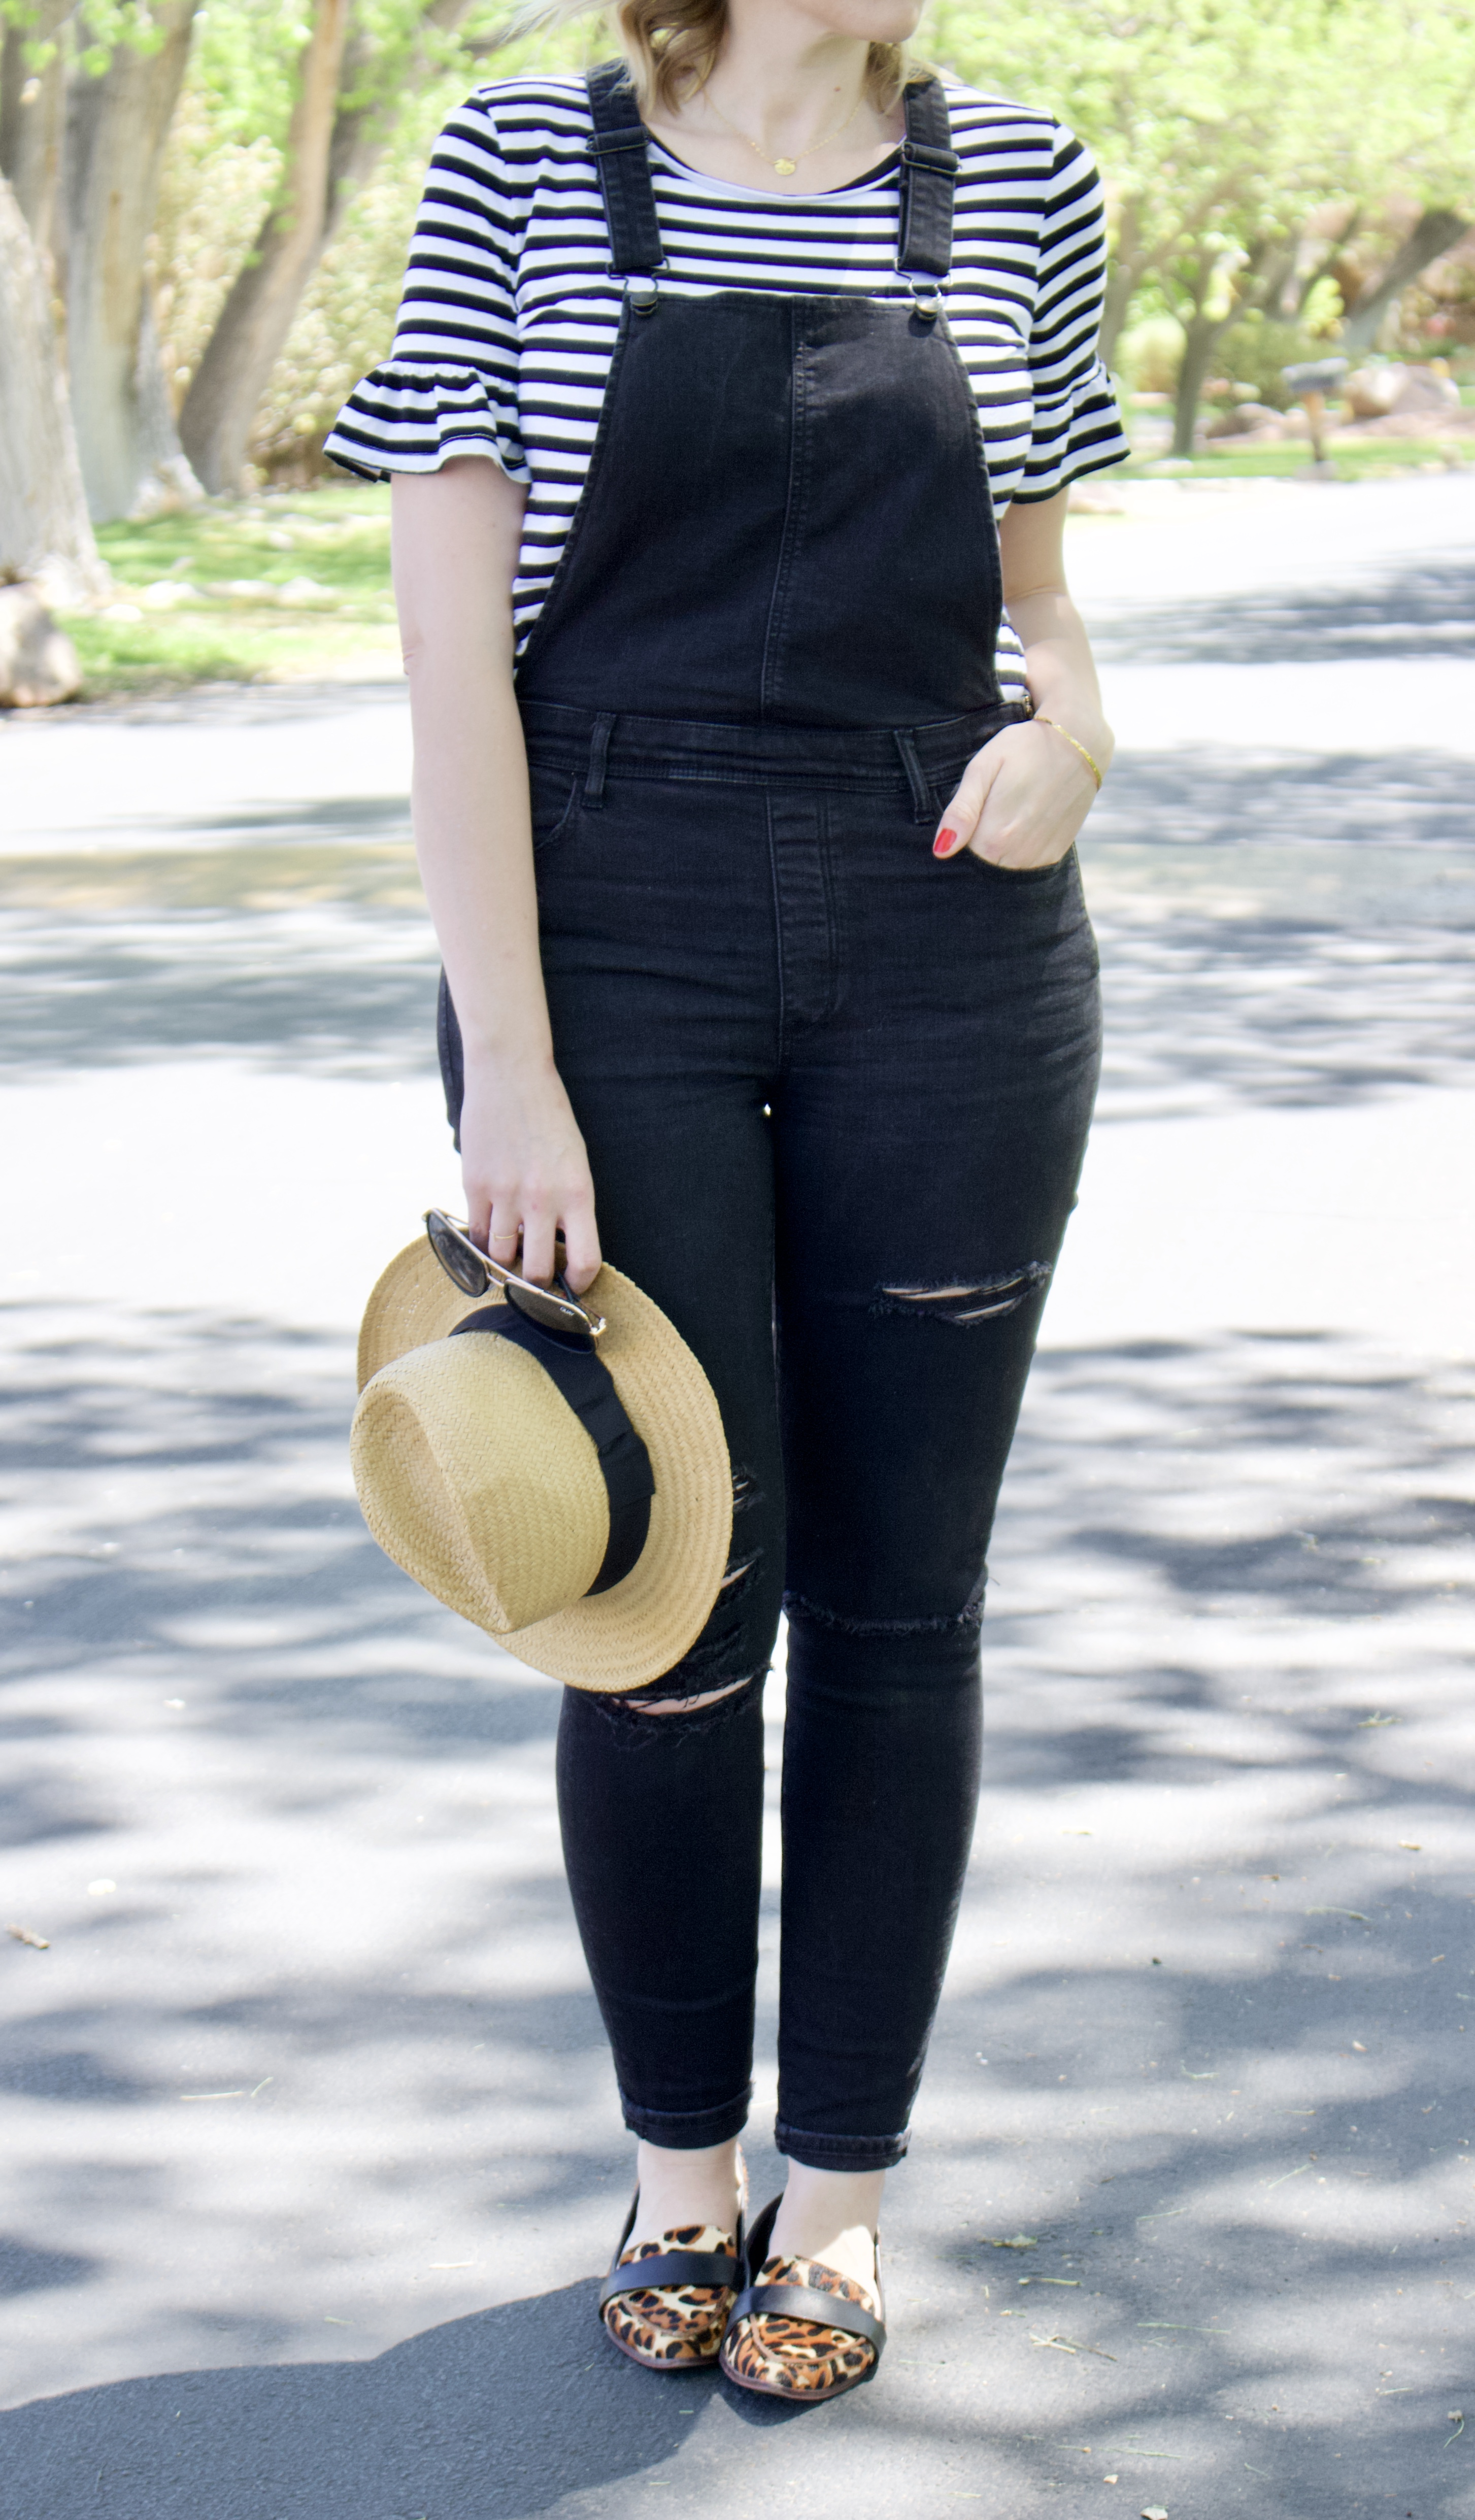 best overalls for tall girls #tallfashion #curvyfashion #overallsoutfit